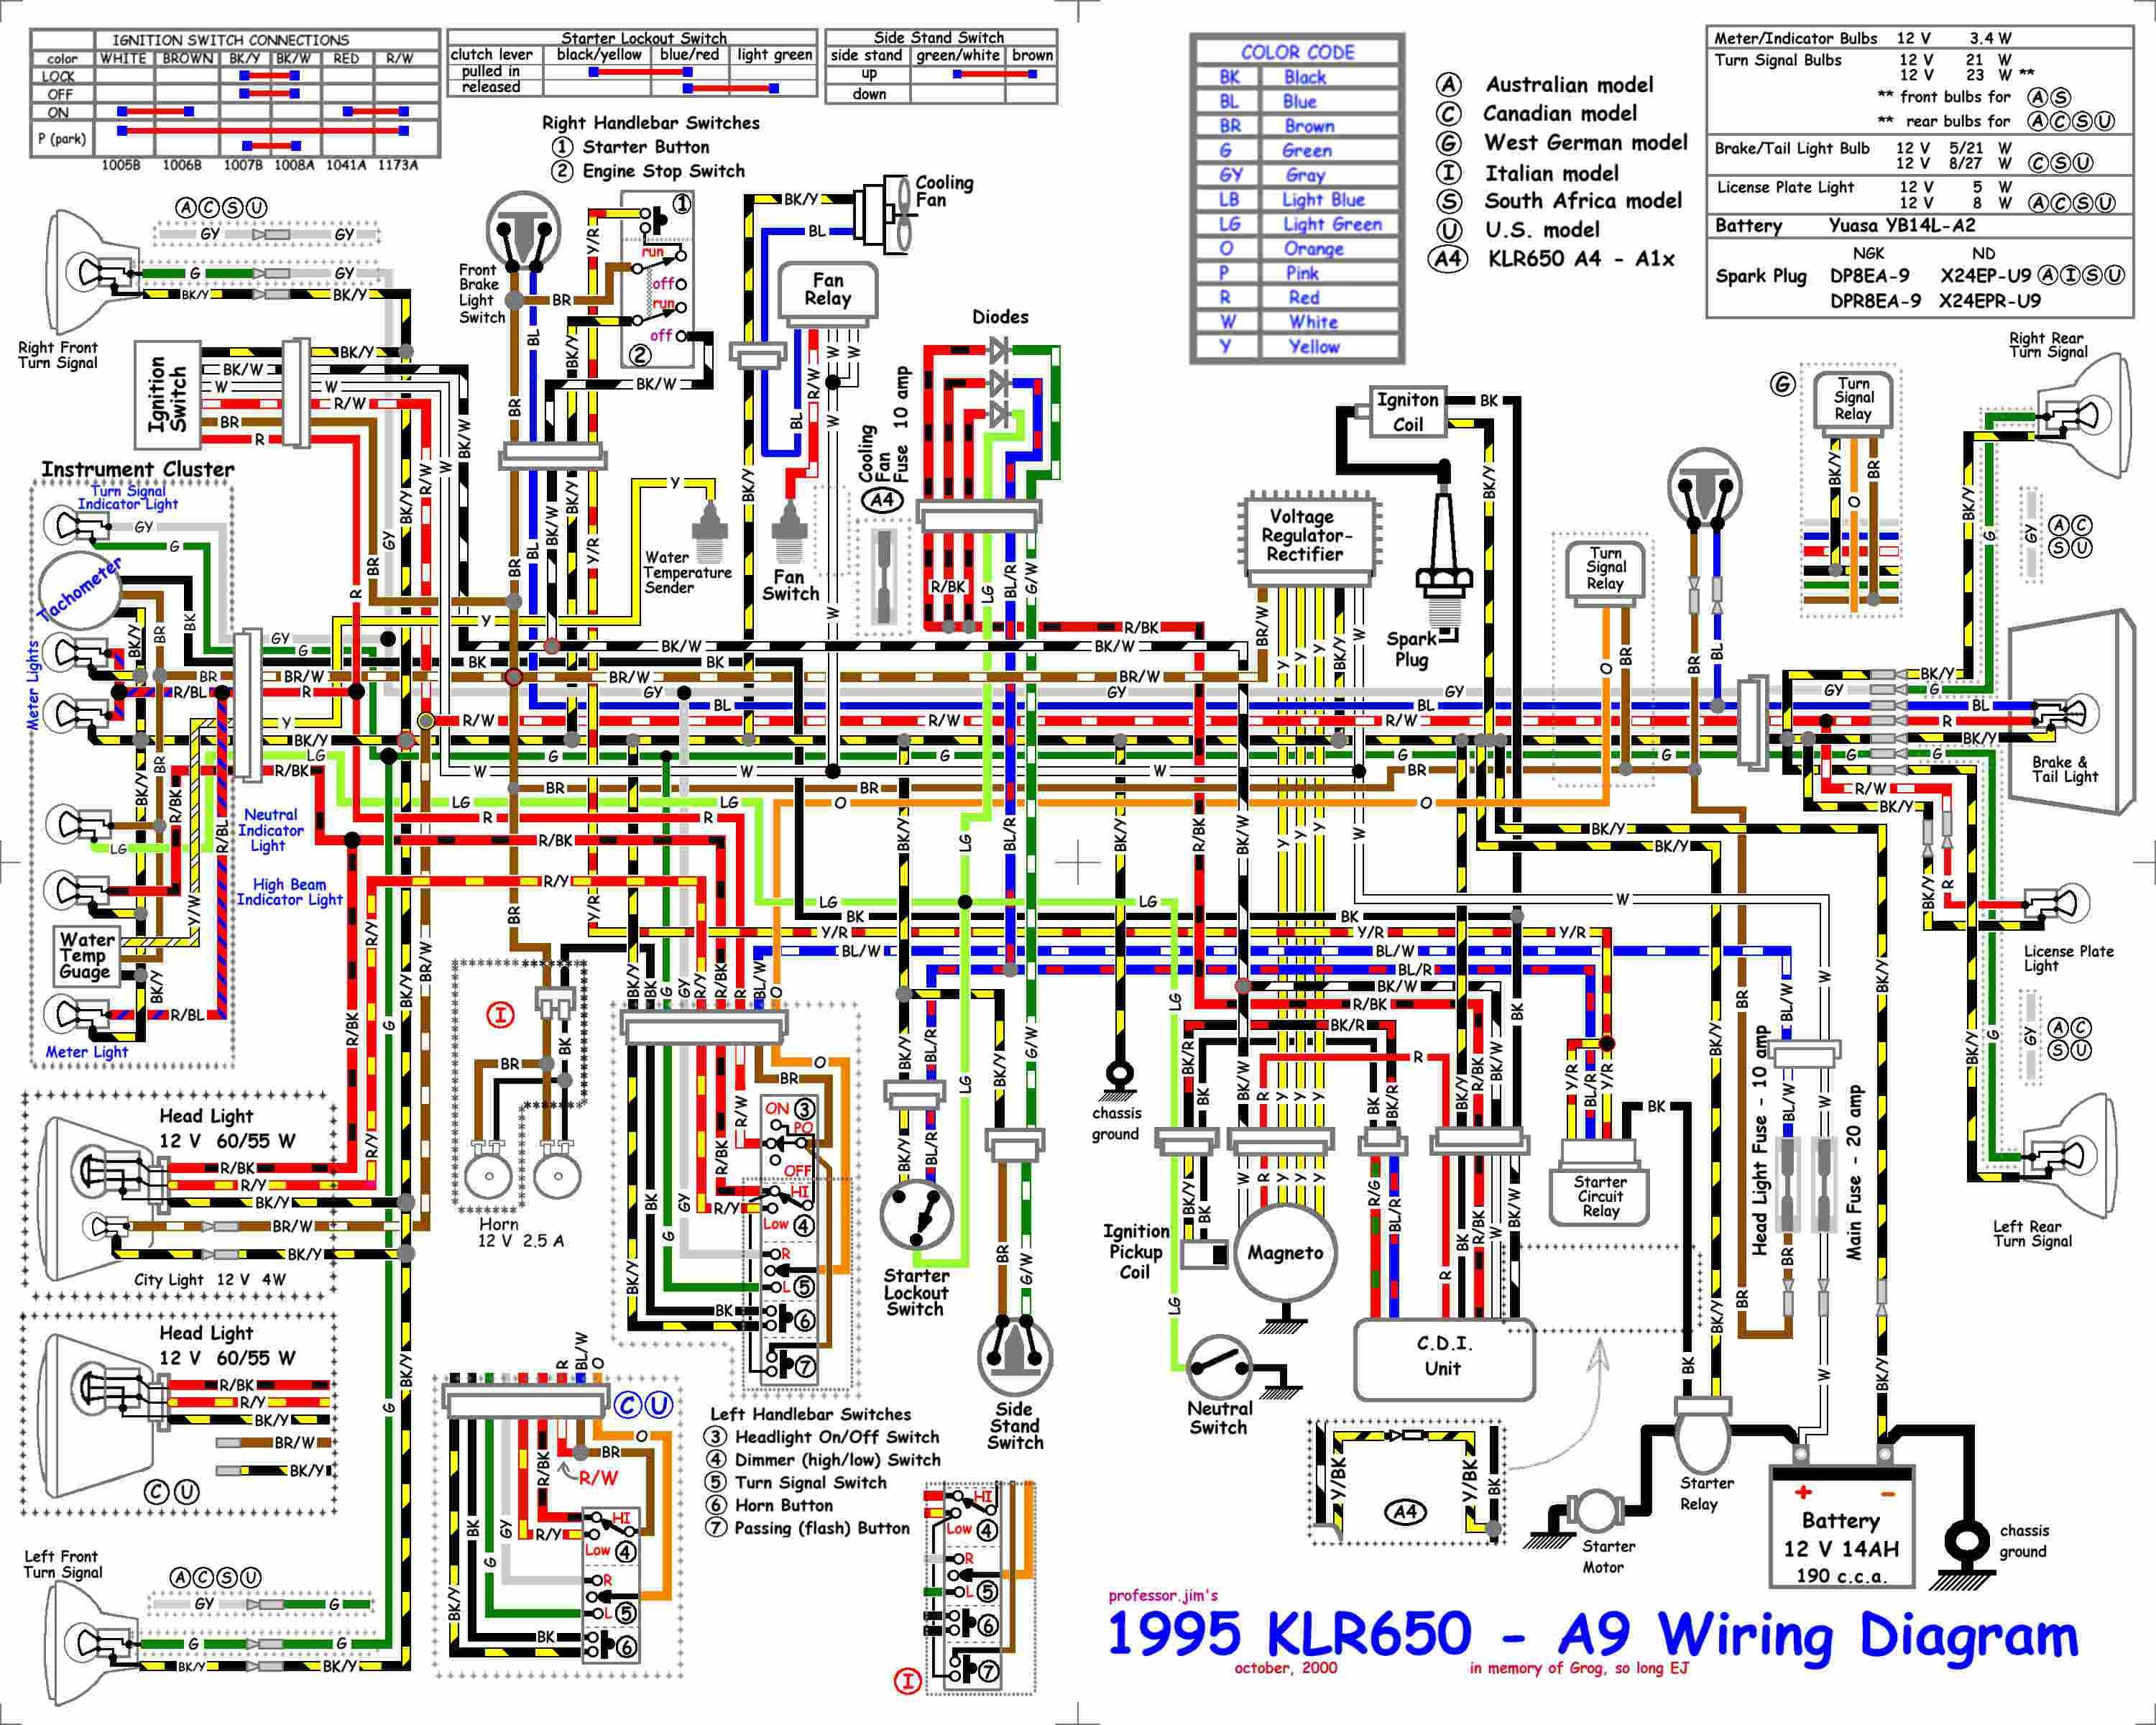 Ford Freestar Fuse Box Diagram On 4 Pin Round Trailer Wiring Diagram